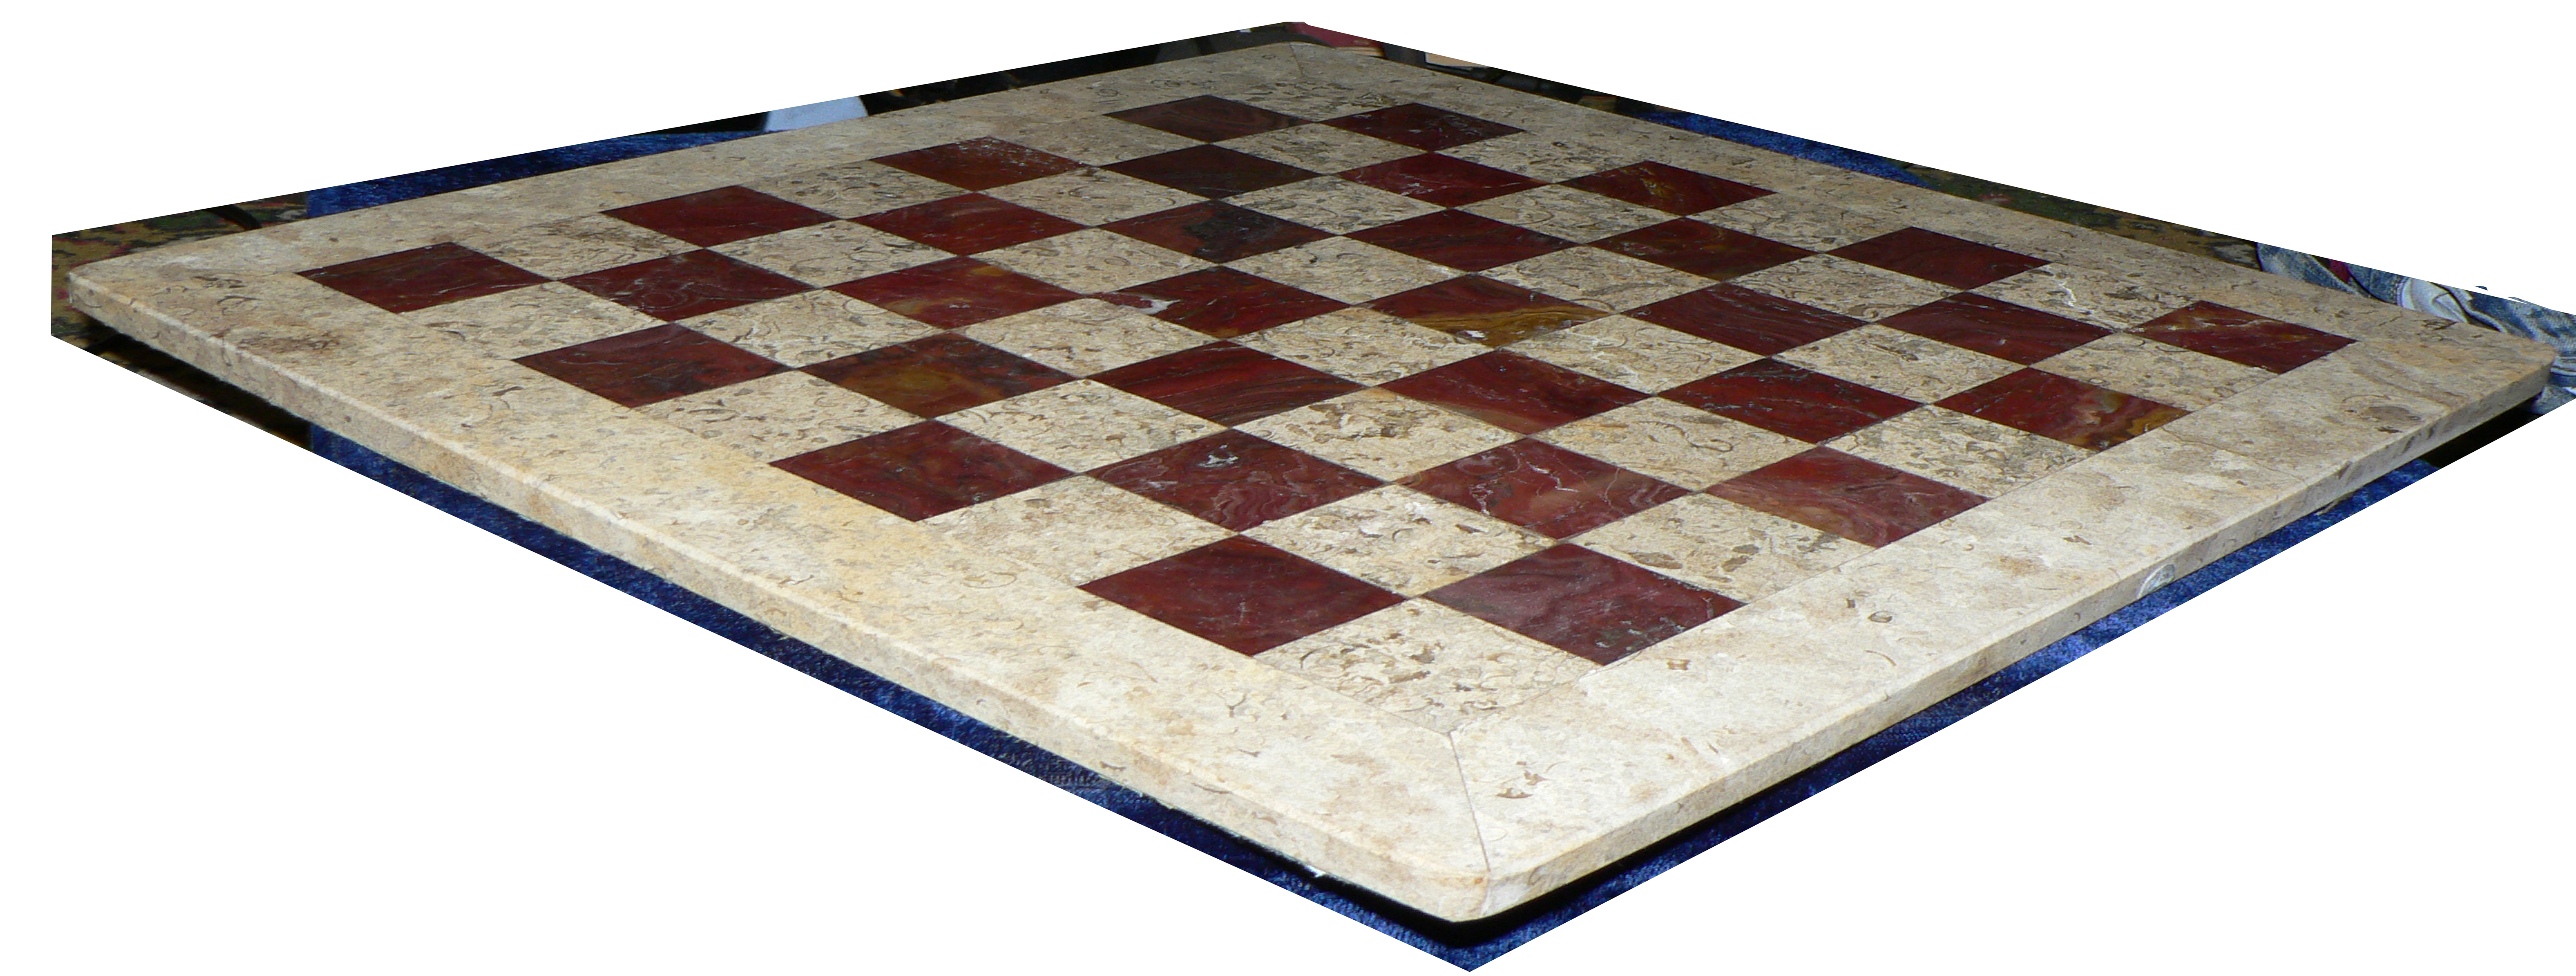 Stock-Chess board photos-pack